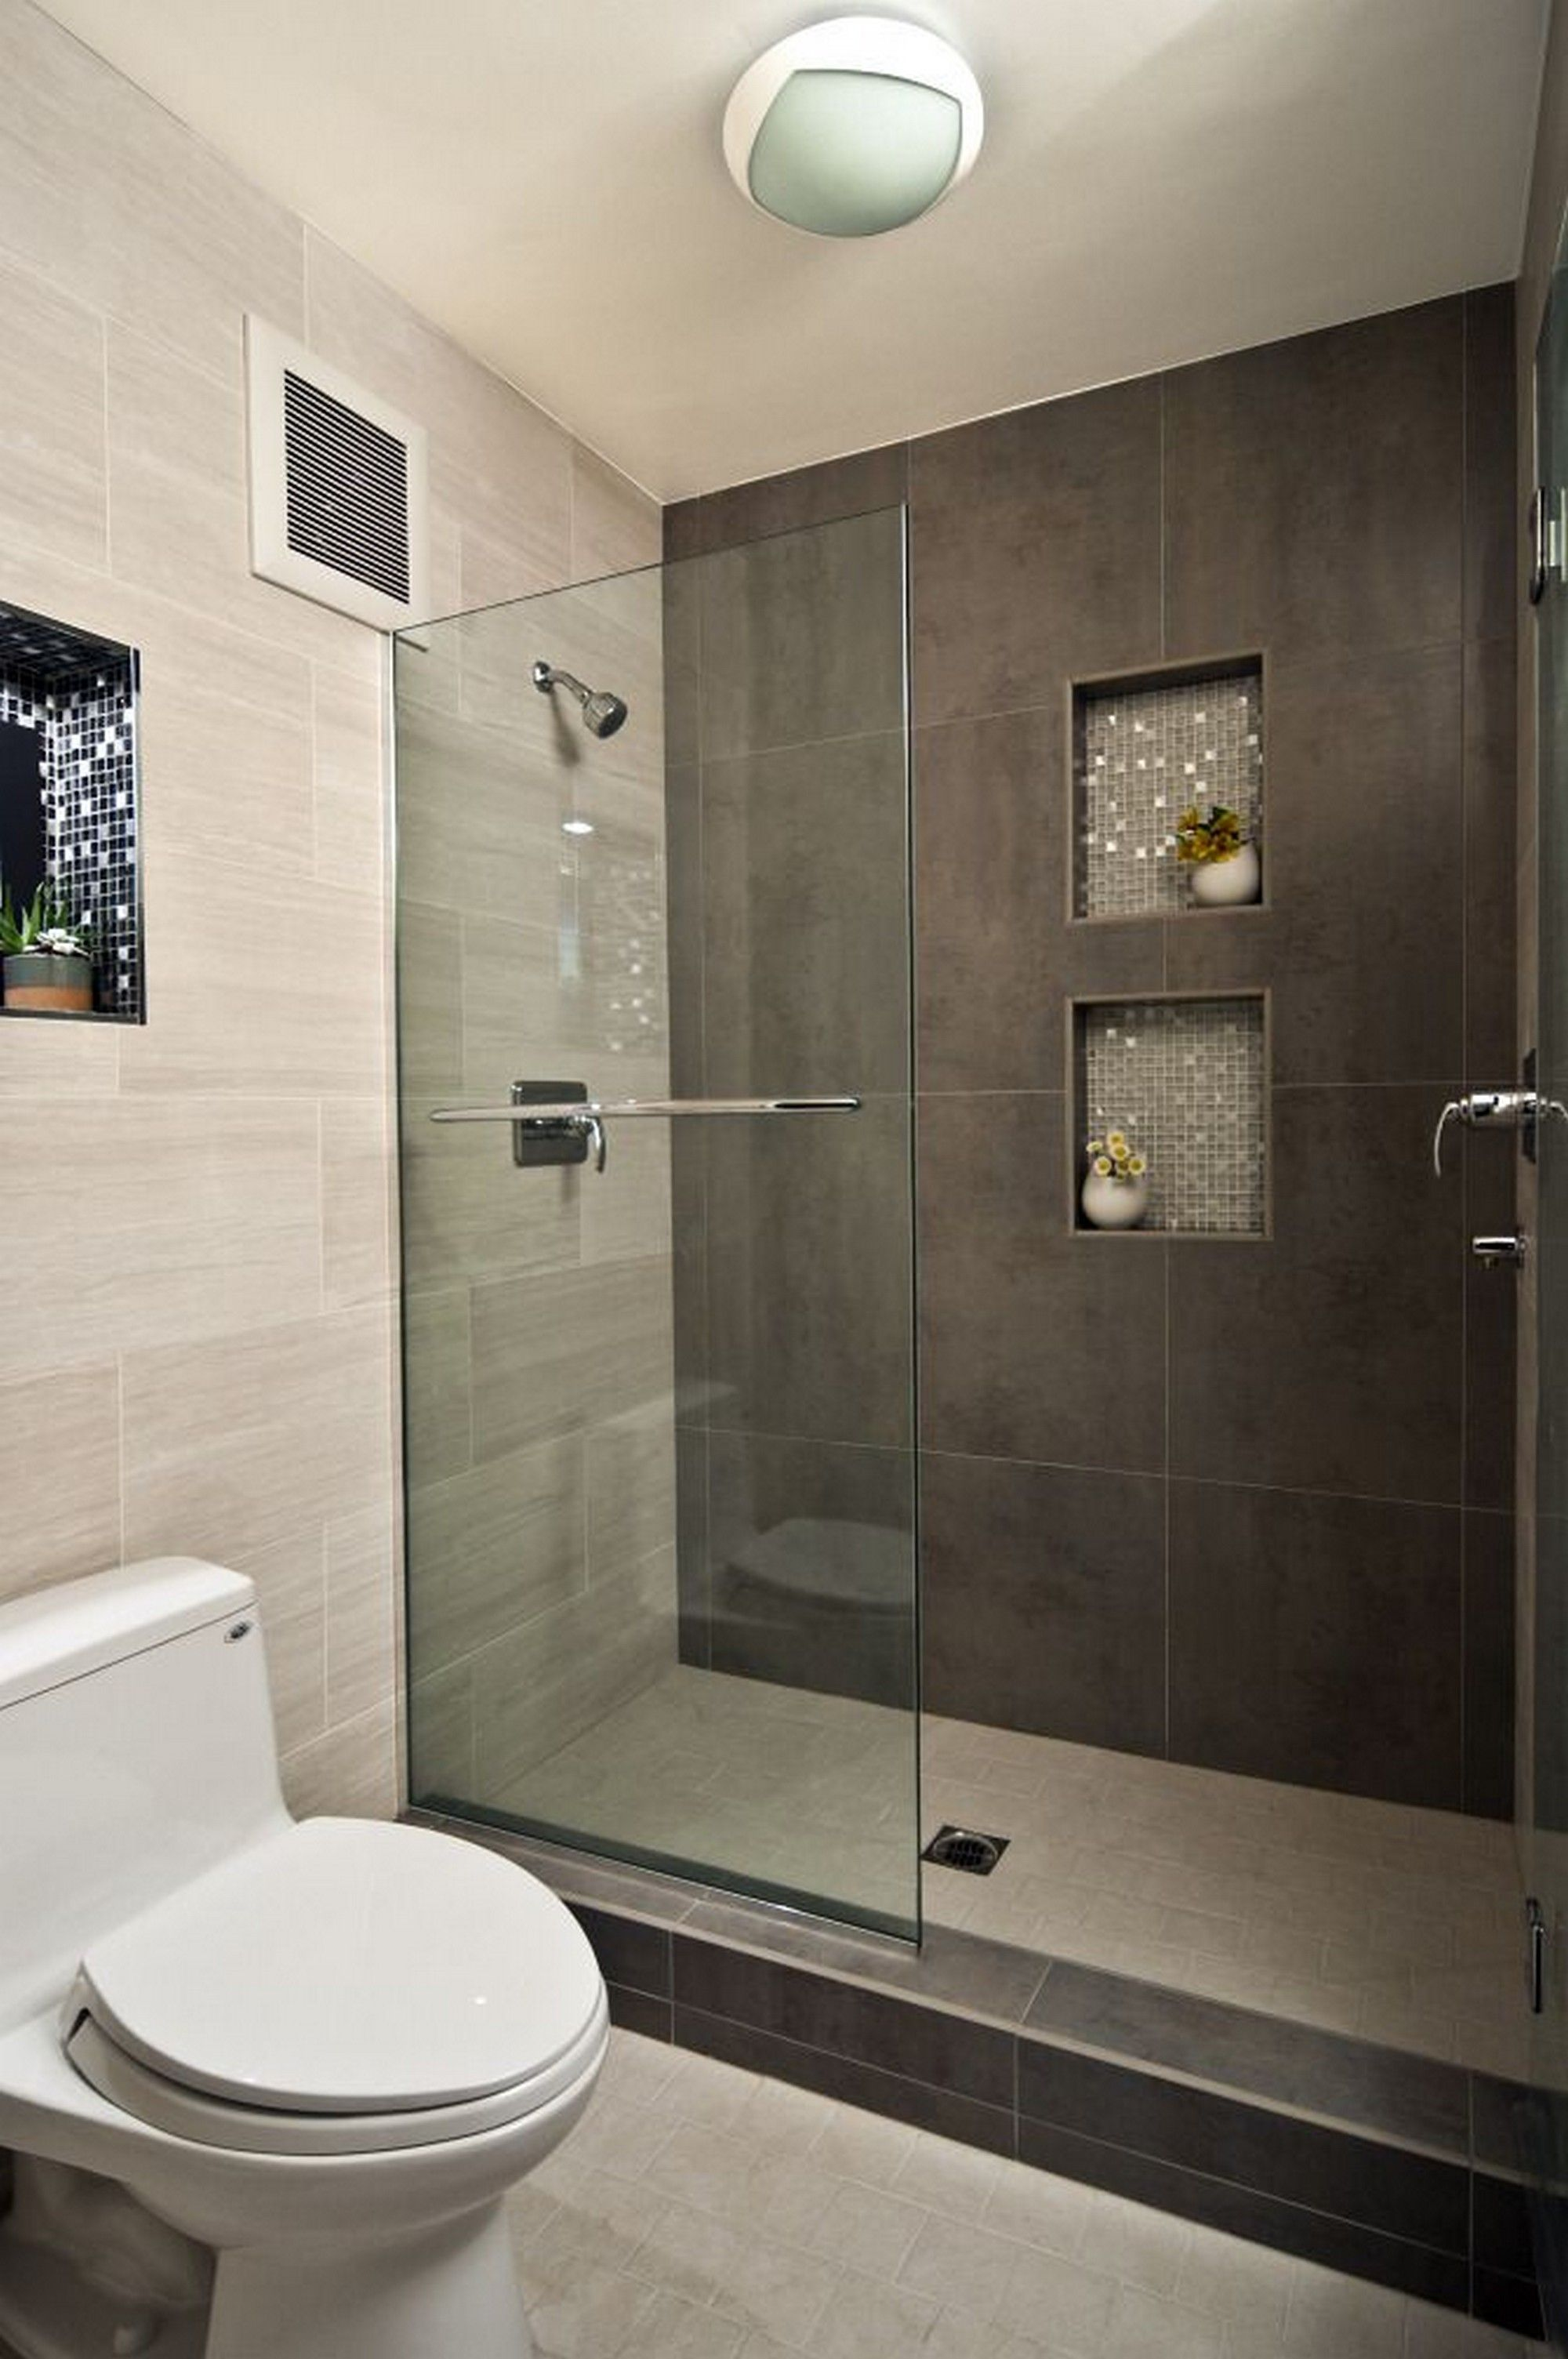 Modern Bathroom Design Ideas With Walk In Shower Walk In Shower - Small bathroom shower ideas for small bathroom ideas